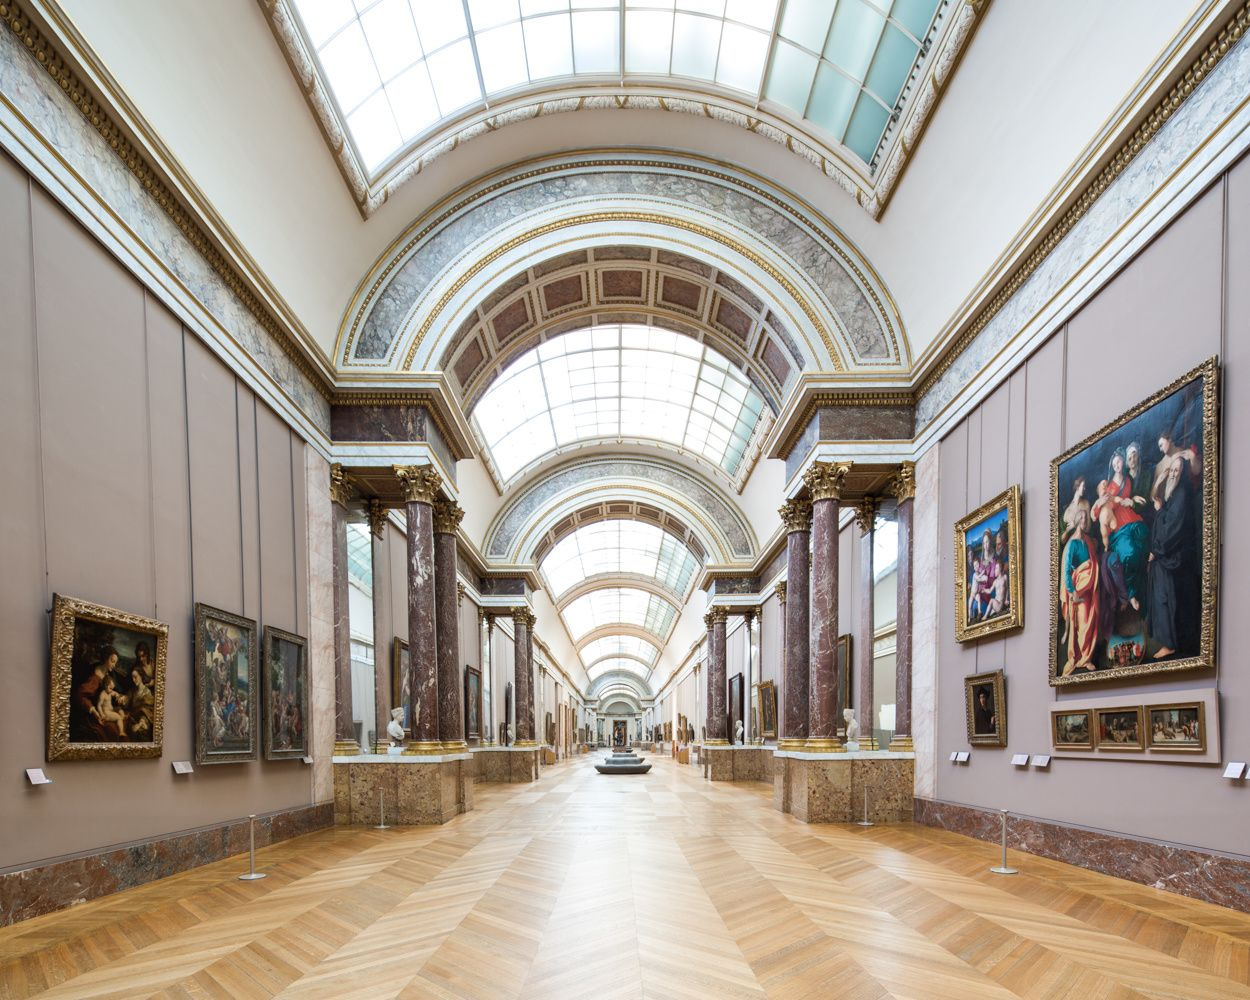 Louvre - Grand Galerie